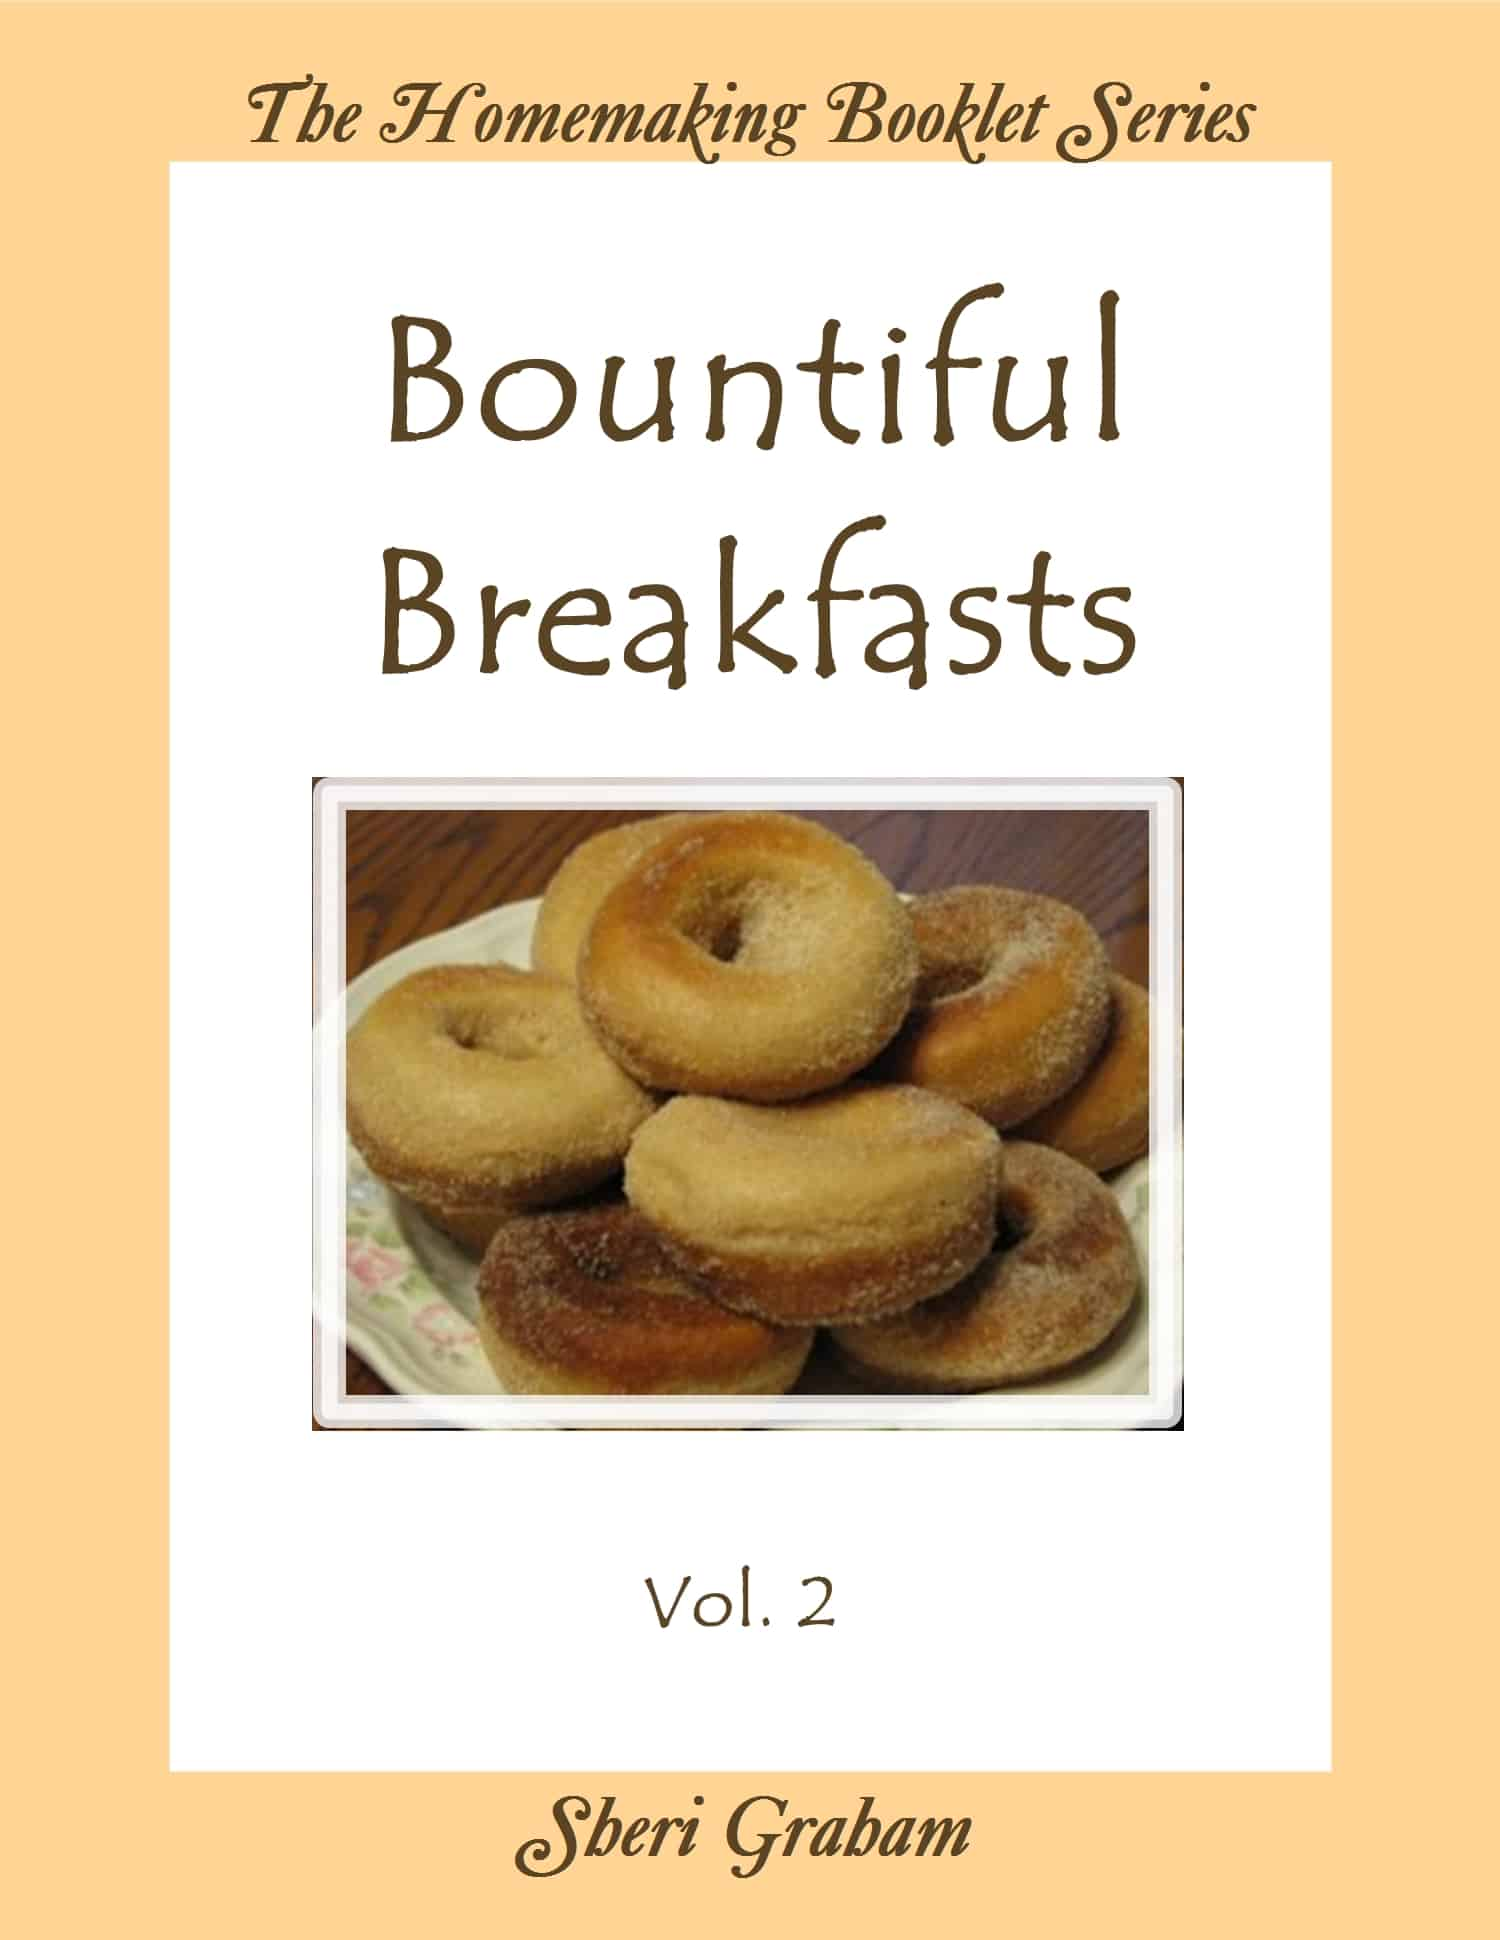 Bountiful Breakfasts - Vol. 2 (Kindle book)